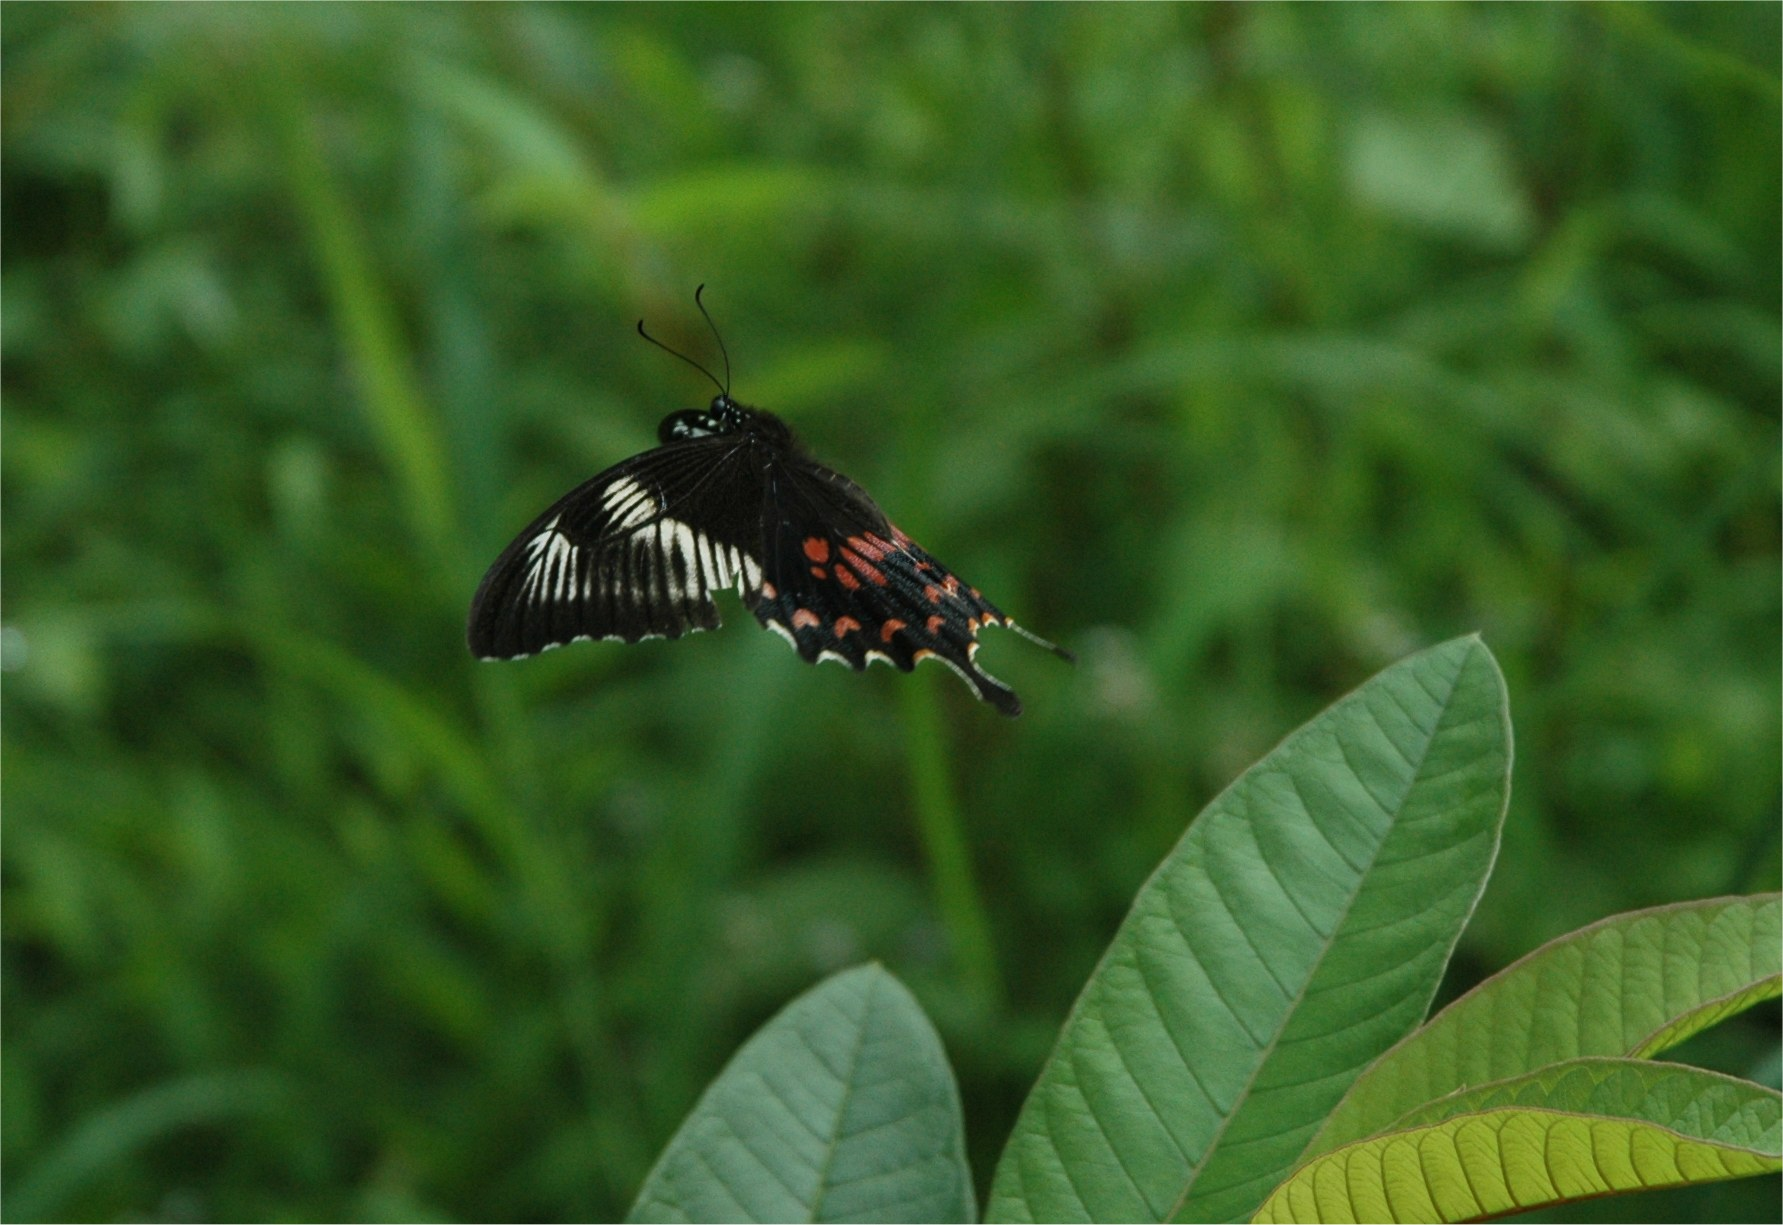 Common Mormon  ( romulus female ) takes flight. Photograph by Katie Bhujwala.